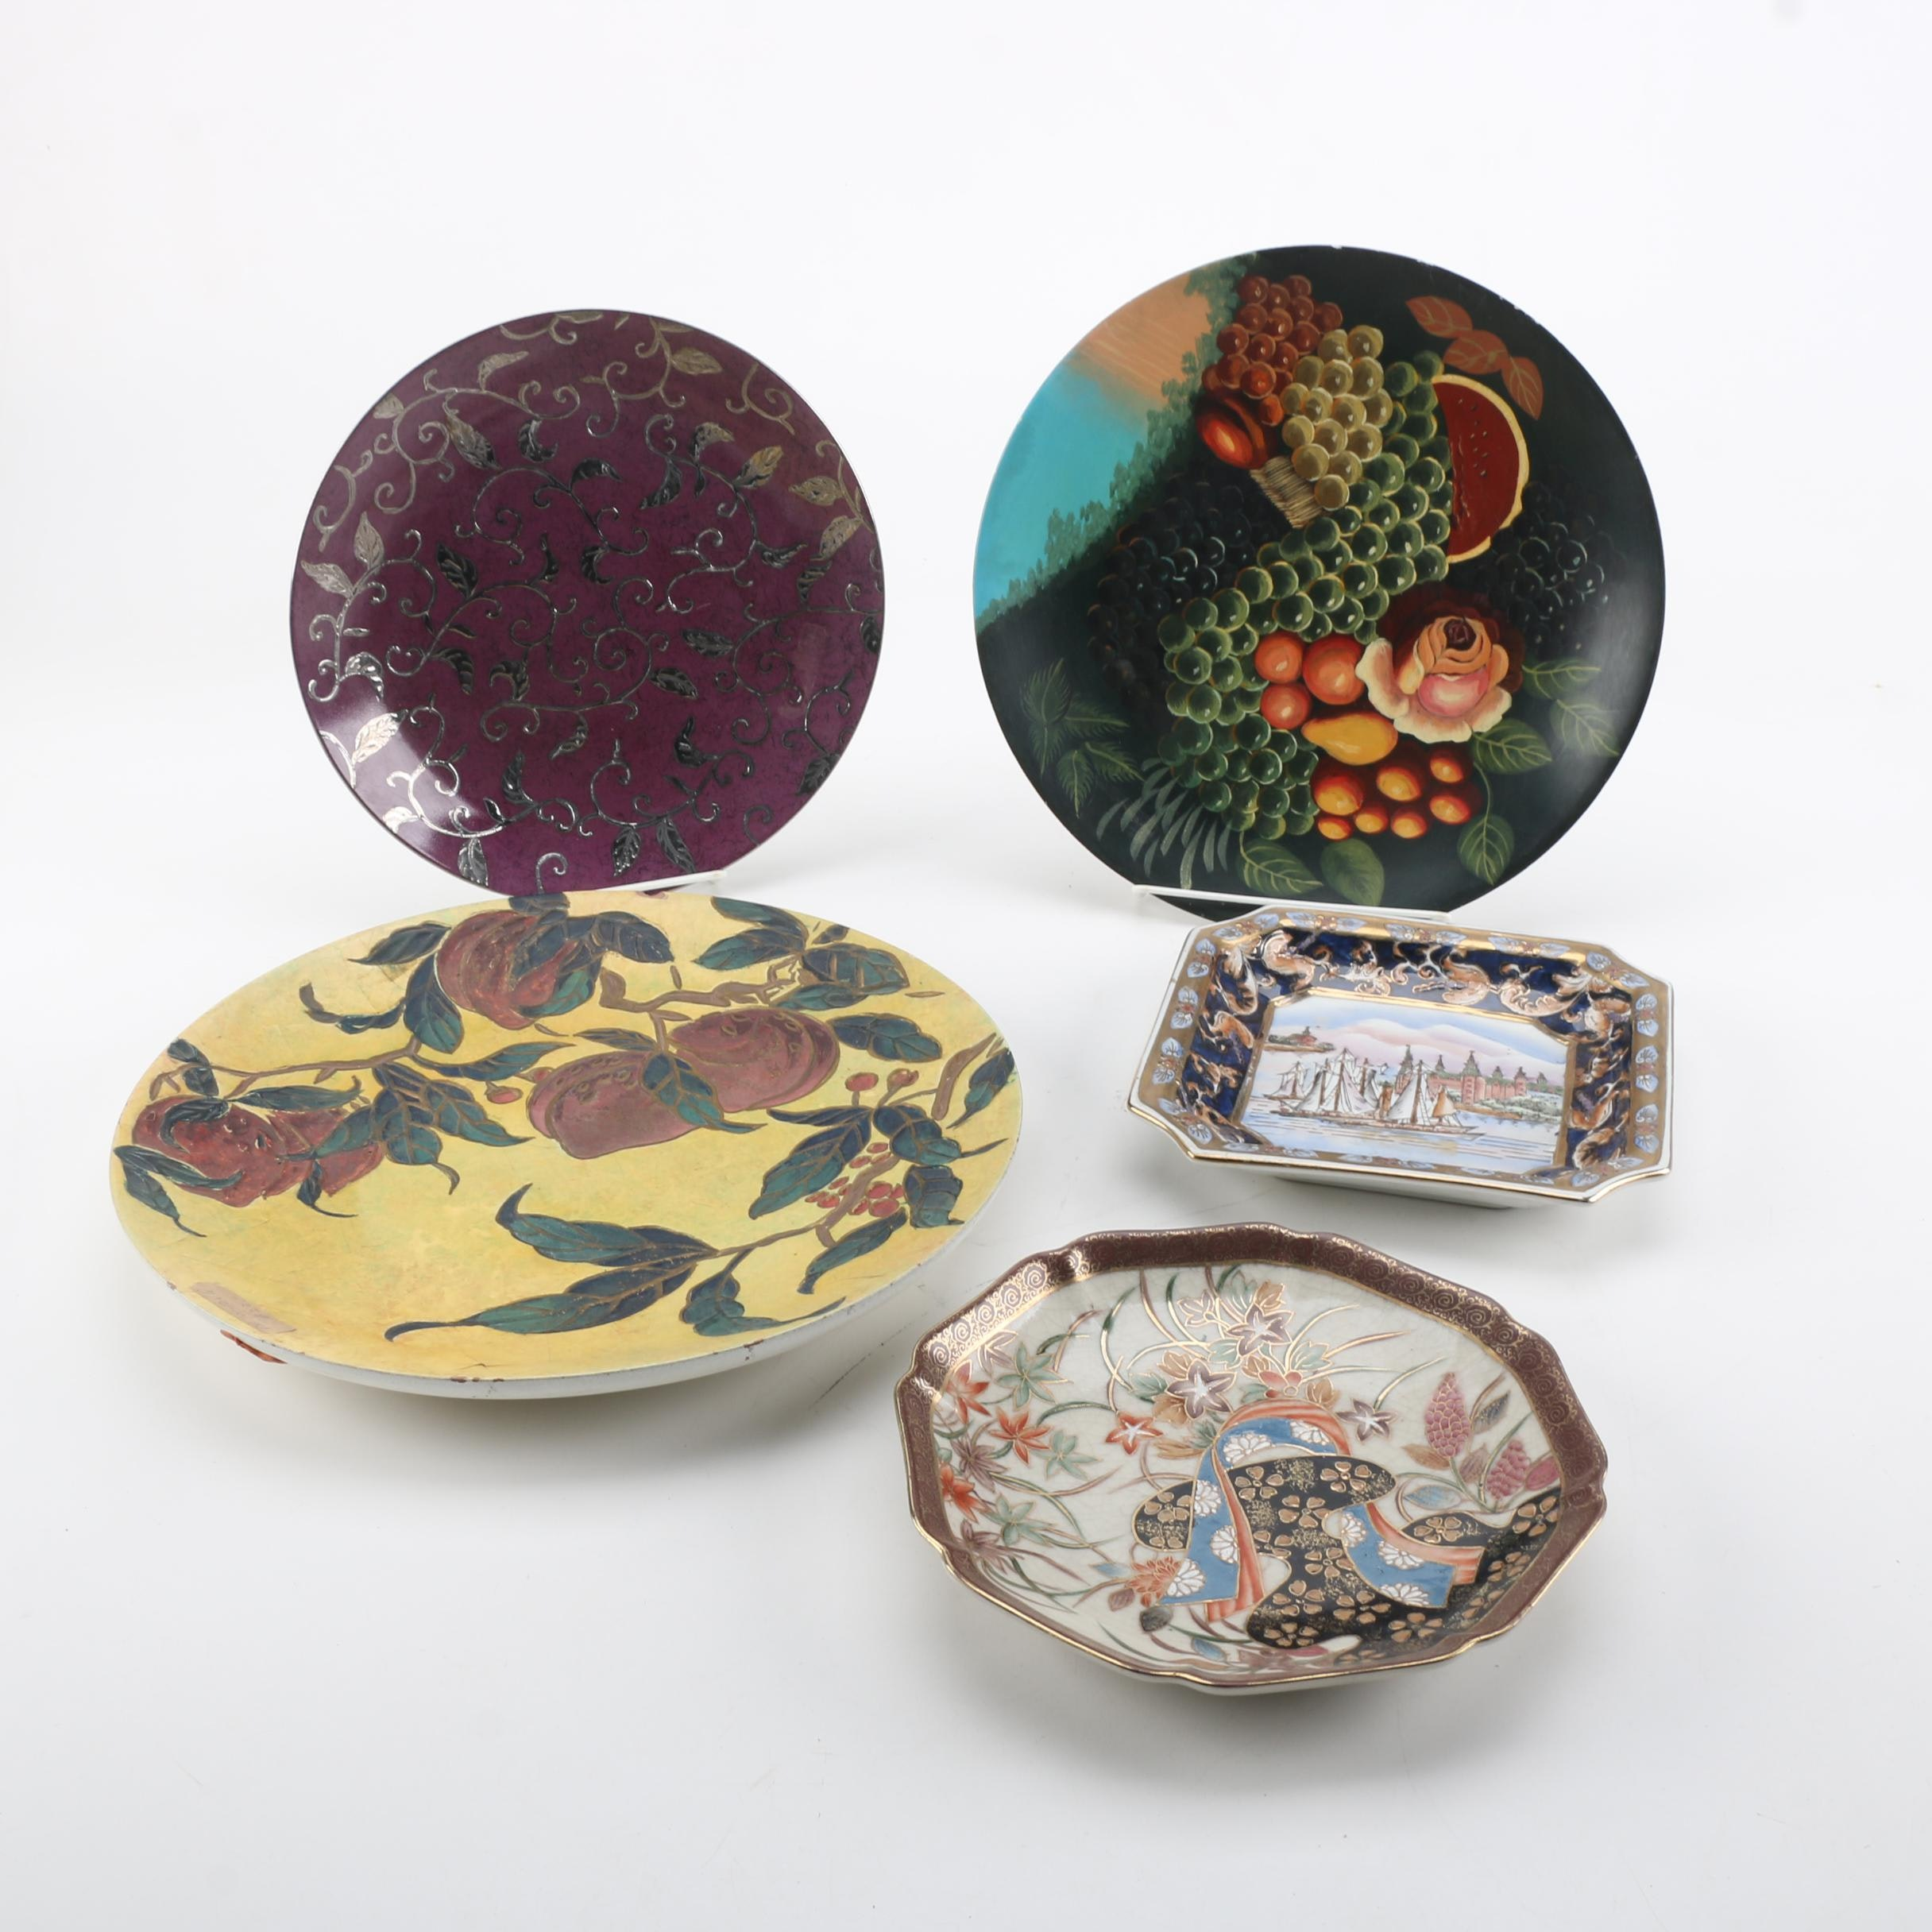 Decorative Chinese Plates